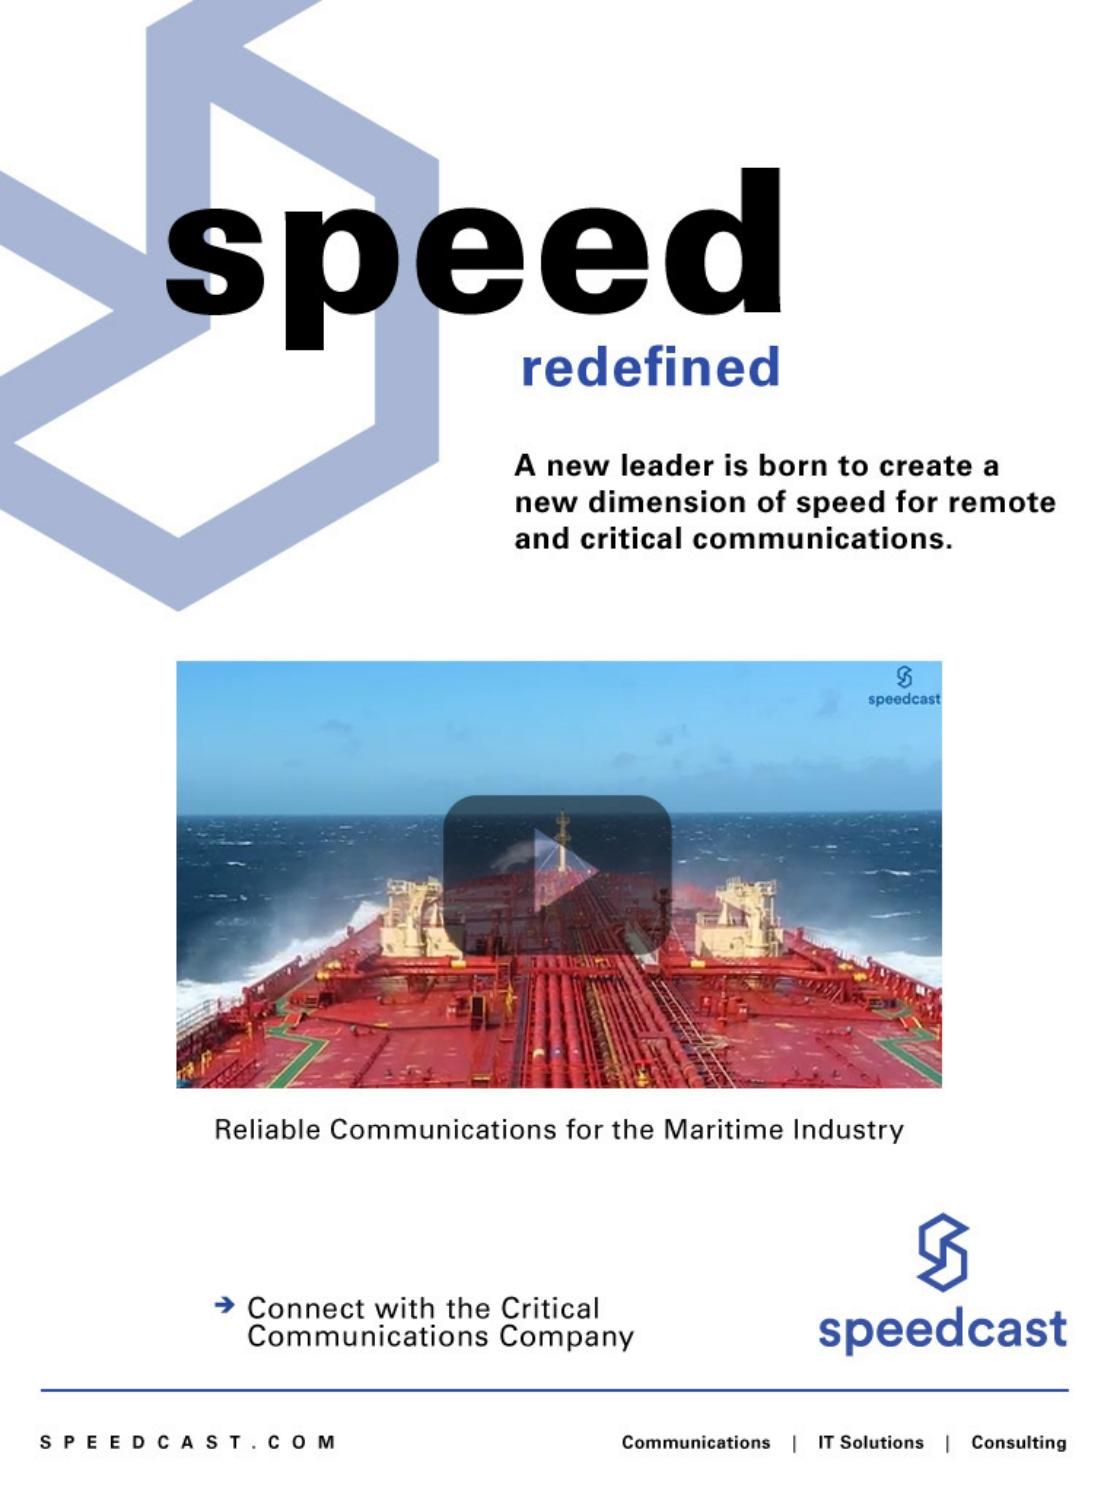 The Complete Guide To Vsat 2017 By Rivieramaritimemedia Issuu Pic Programmable Integrated Circuits Wouter Van Ooijen